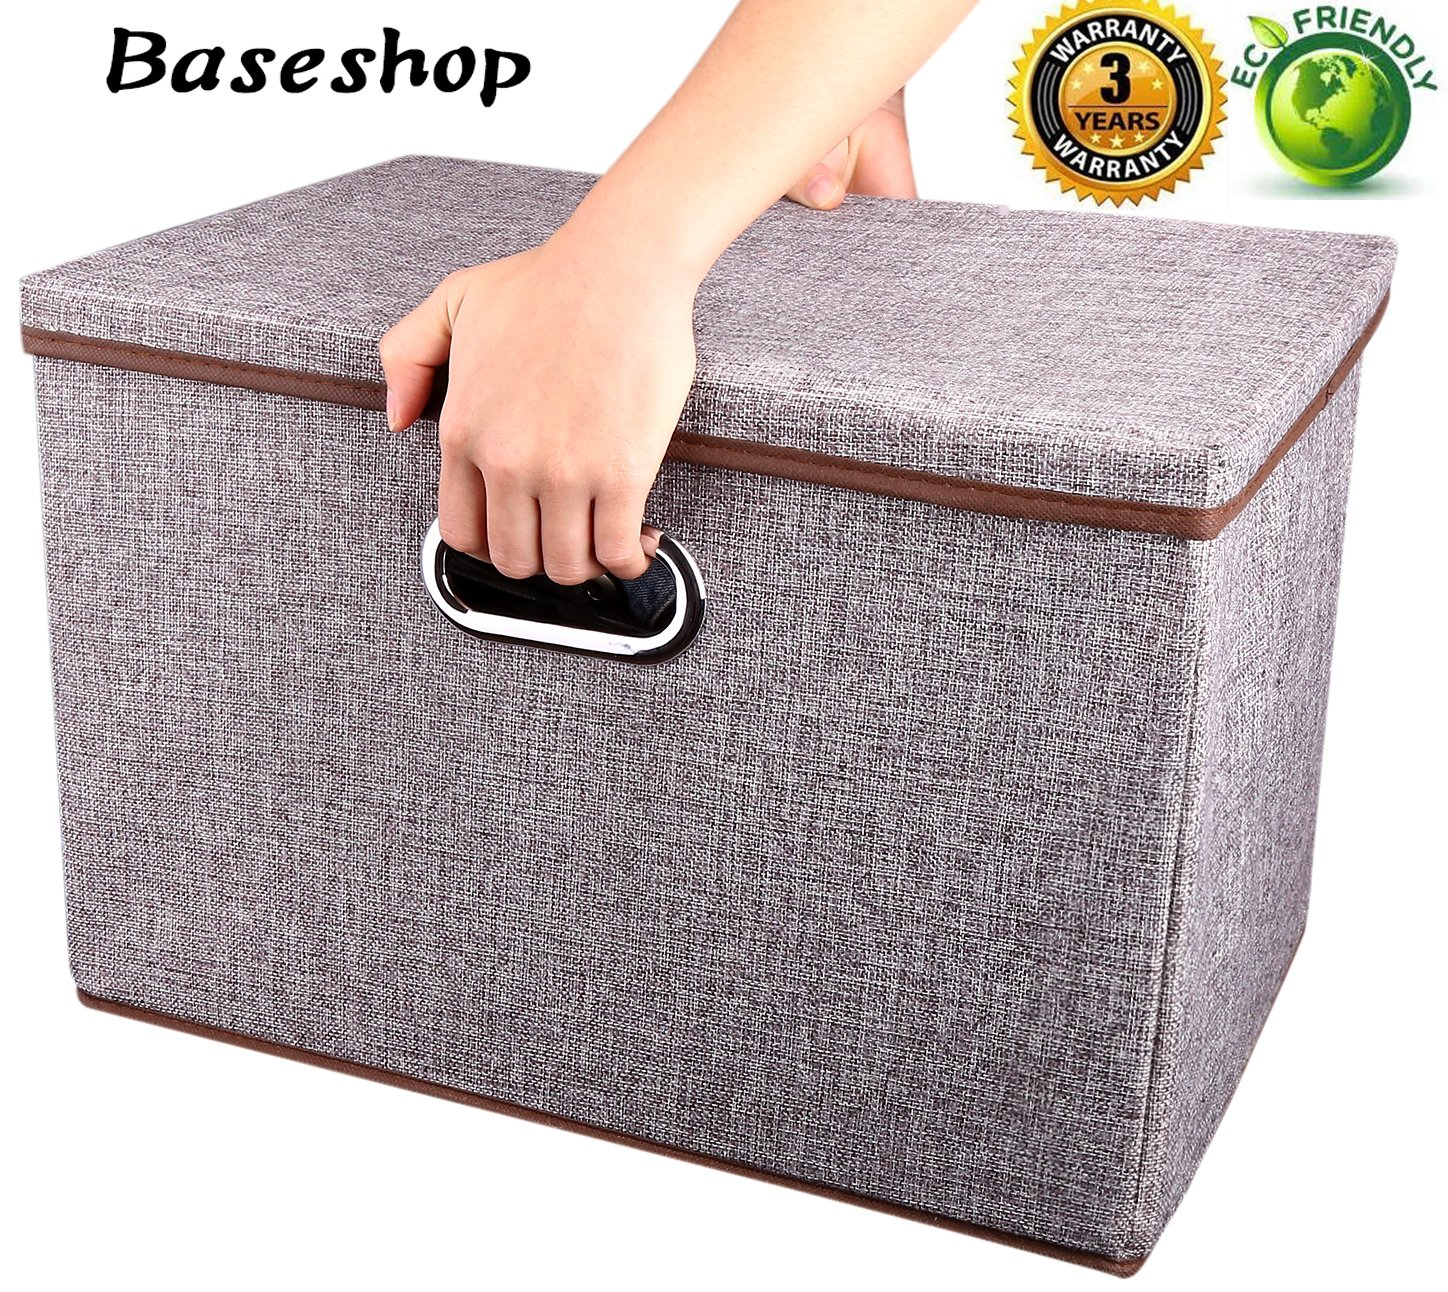 Storage Container Organizer bin Collapsible,Large Foldable Linen Fabric Gray Box with Removable Lid and Handles, for Home,Baby,Office,Nursery,Closet,Bedroom,Living Room,NO Peculiar Smell [1-Pack] Baseshop